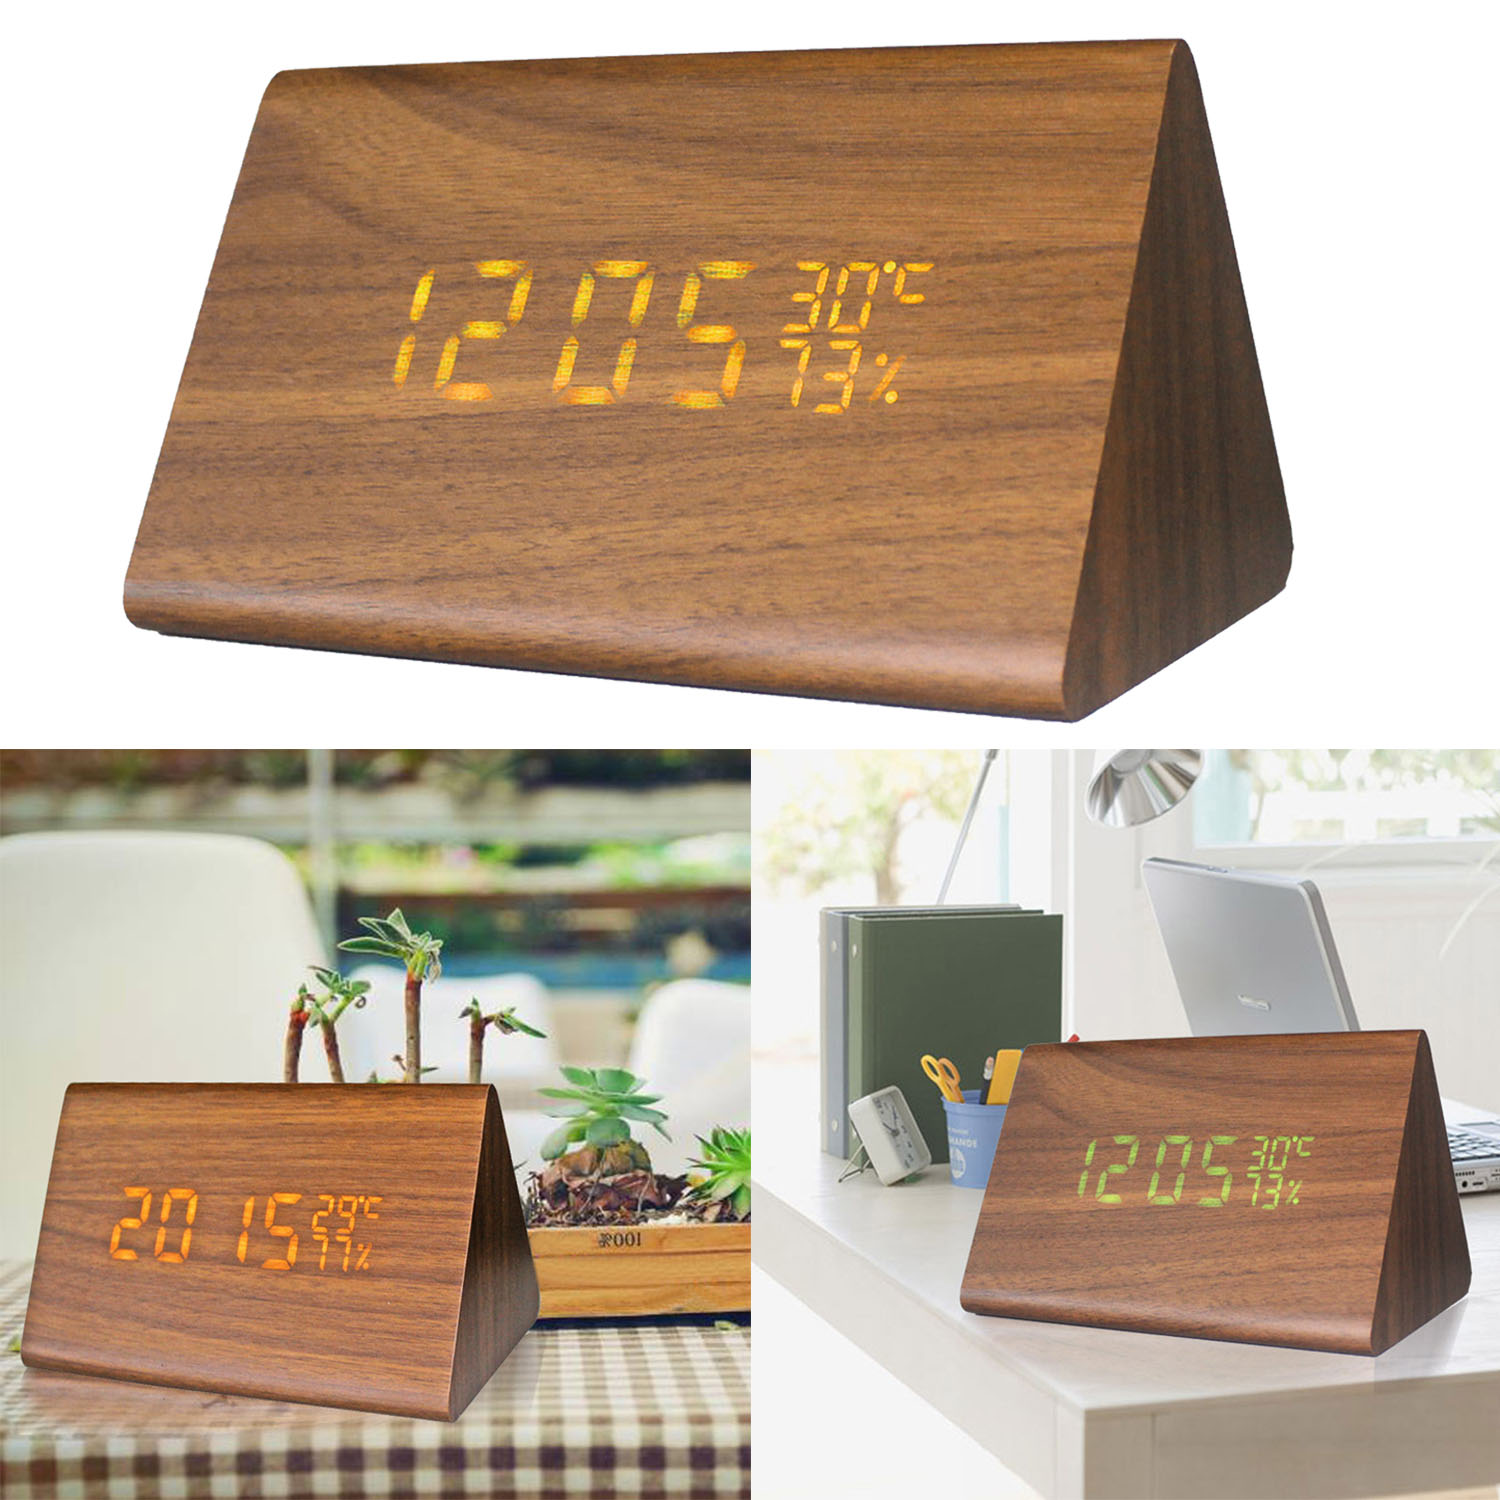 Gosear <font><b>LED</b></font> Light 2 Power Supply Mode Sound Control Temperature Indicator Mute Wooden Decorative Desktop Alarm Clock Accessories